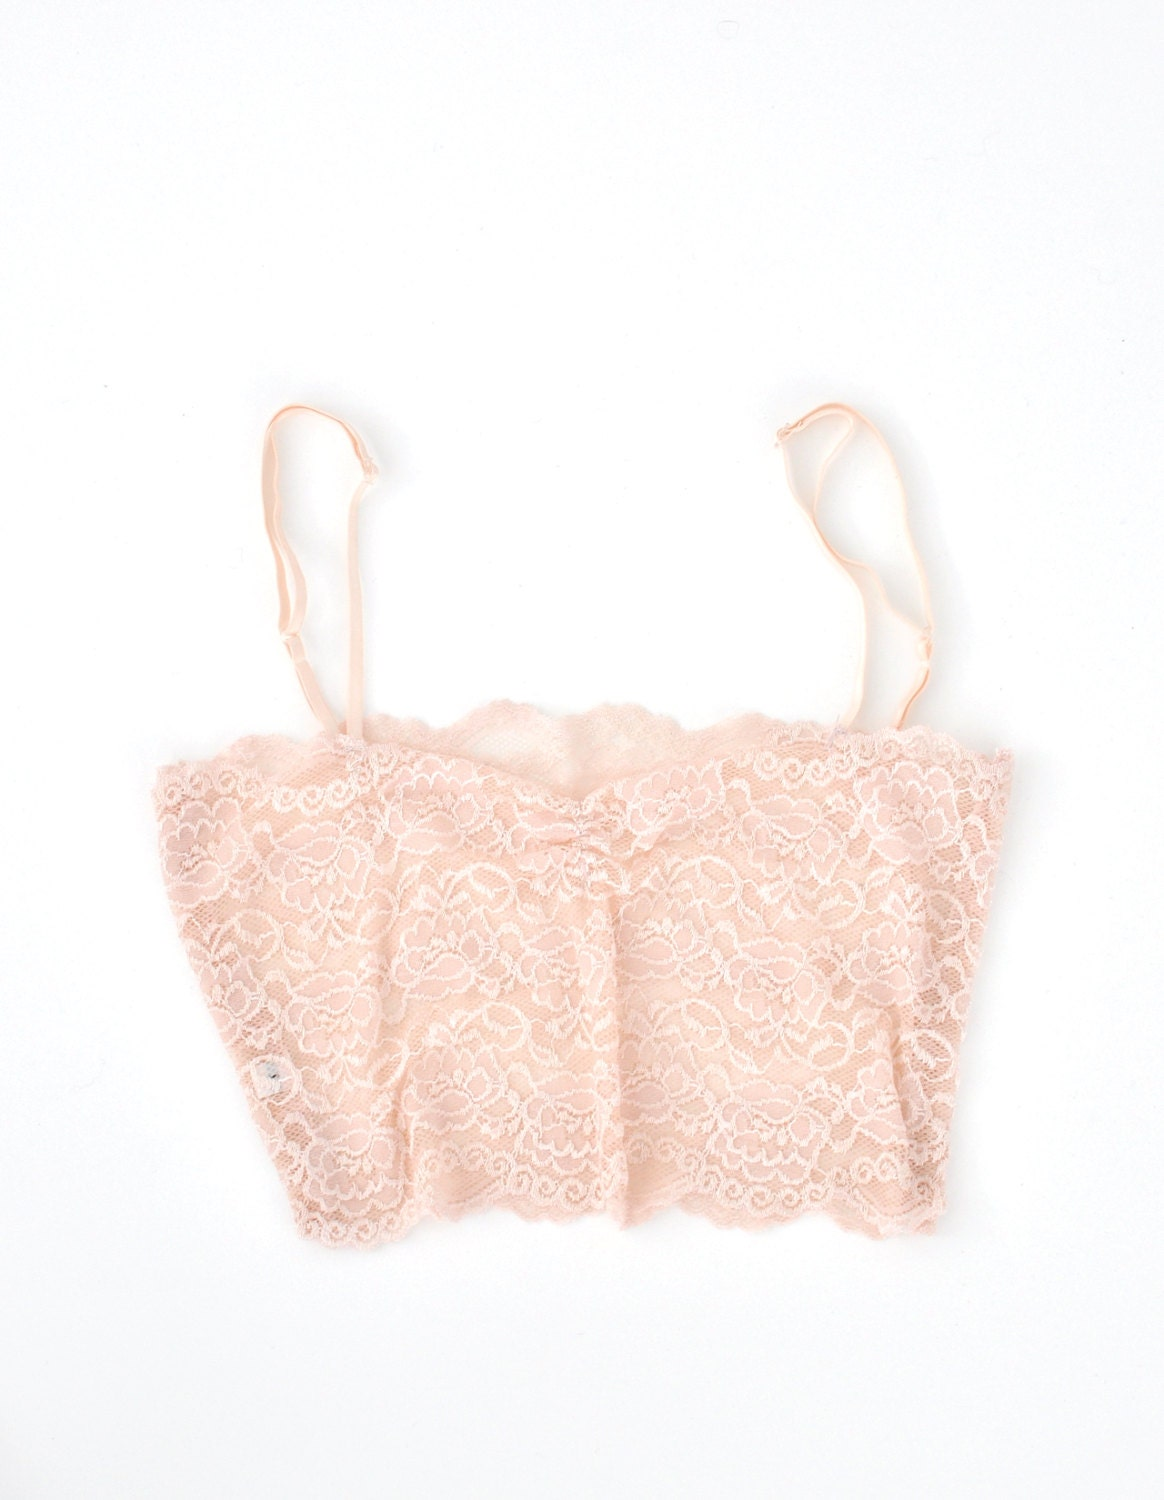 Lace bralette lace camisole White and pink vintage lace Bra, white and pink bralette size  XXS, XS, S, M, L, XL - LittleWhiteCloset